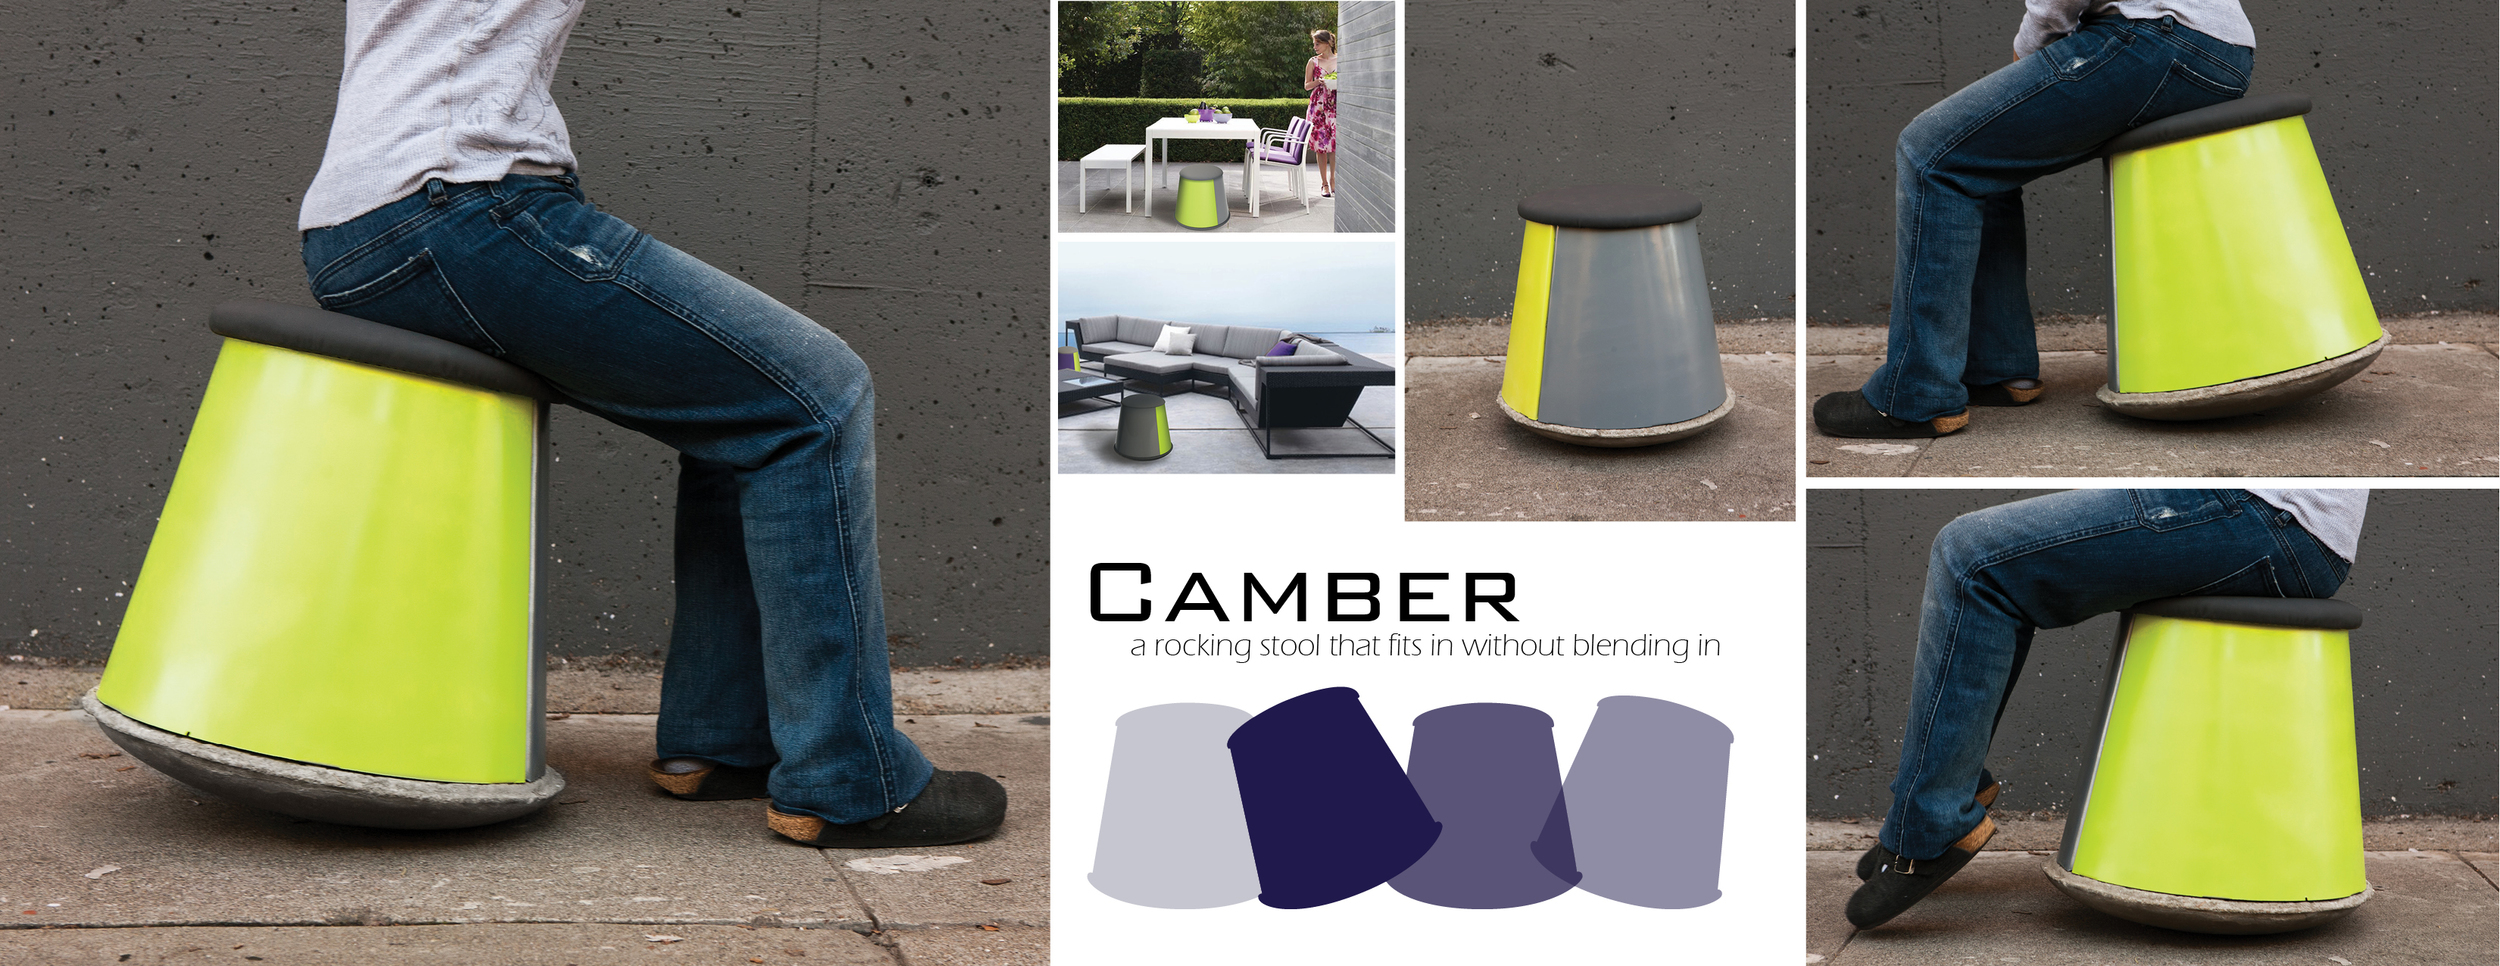 camber1